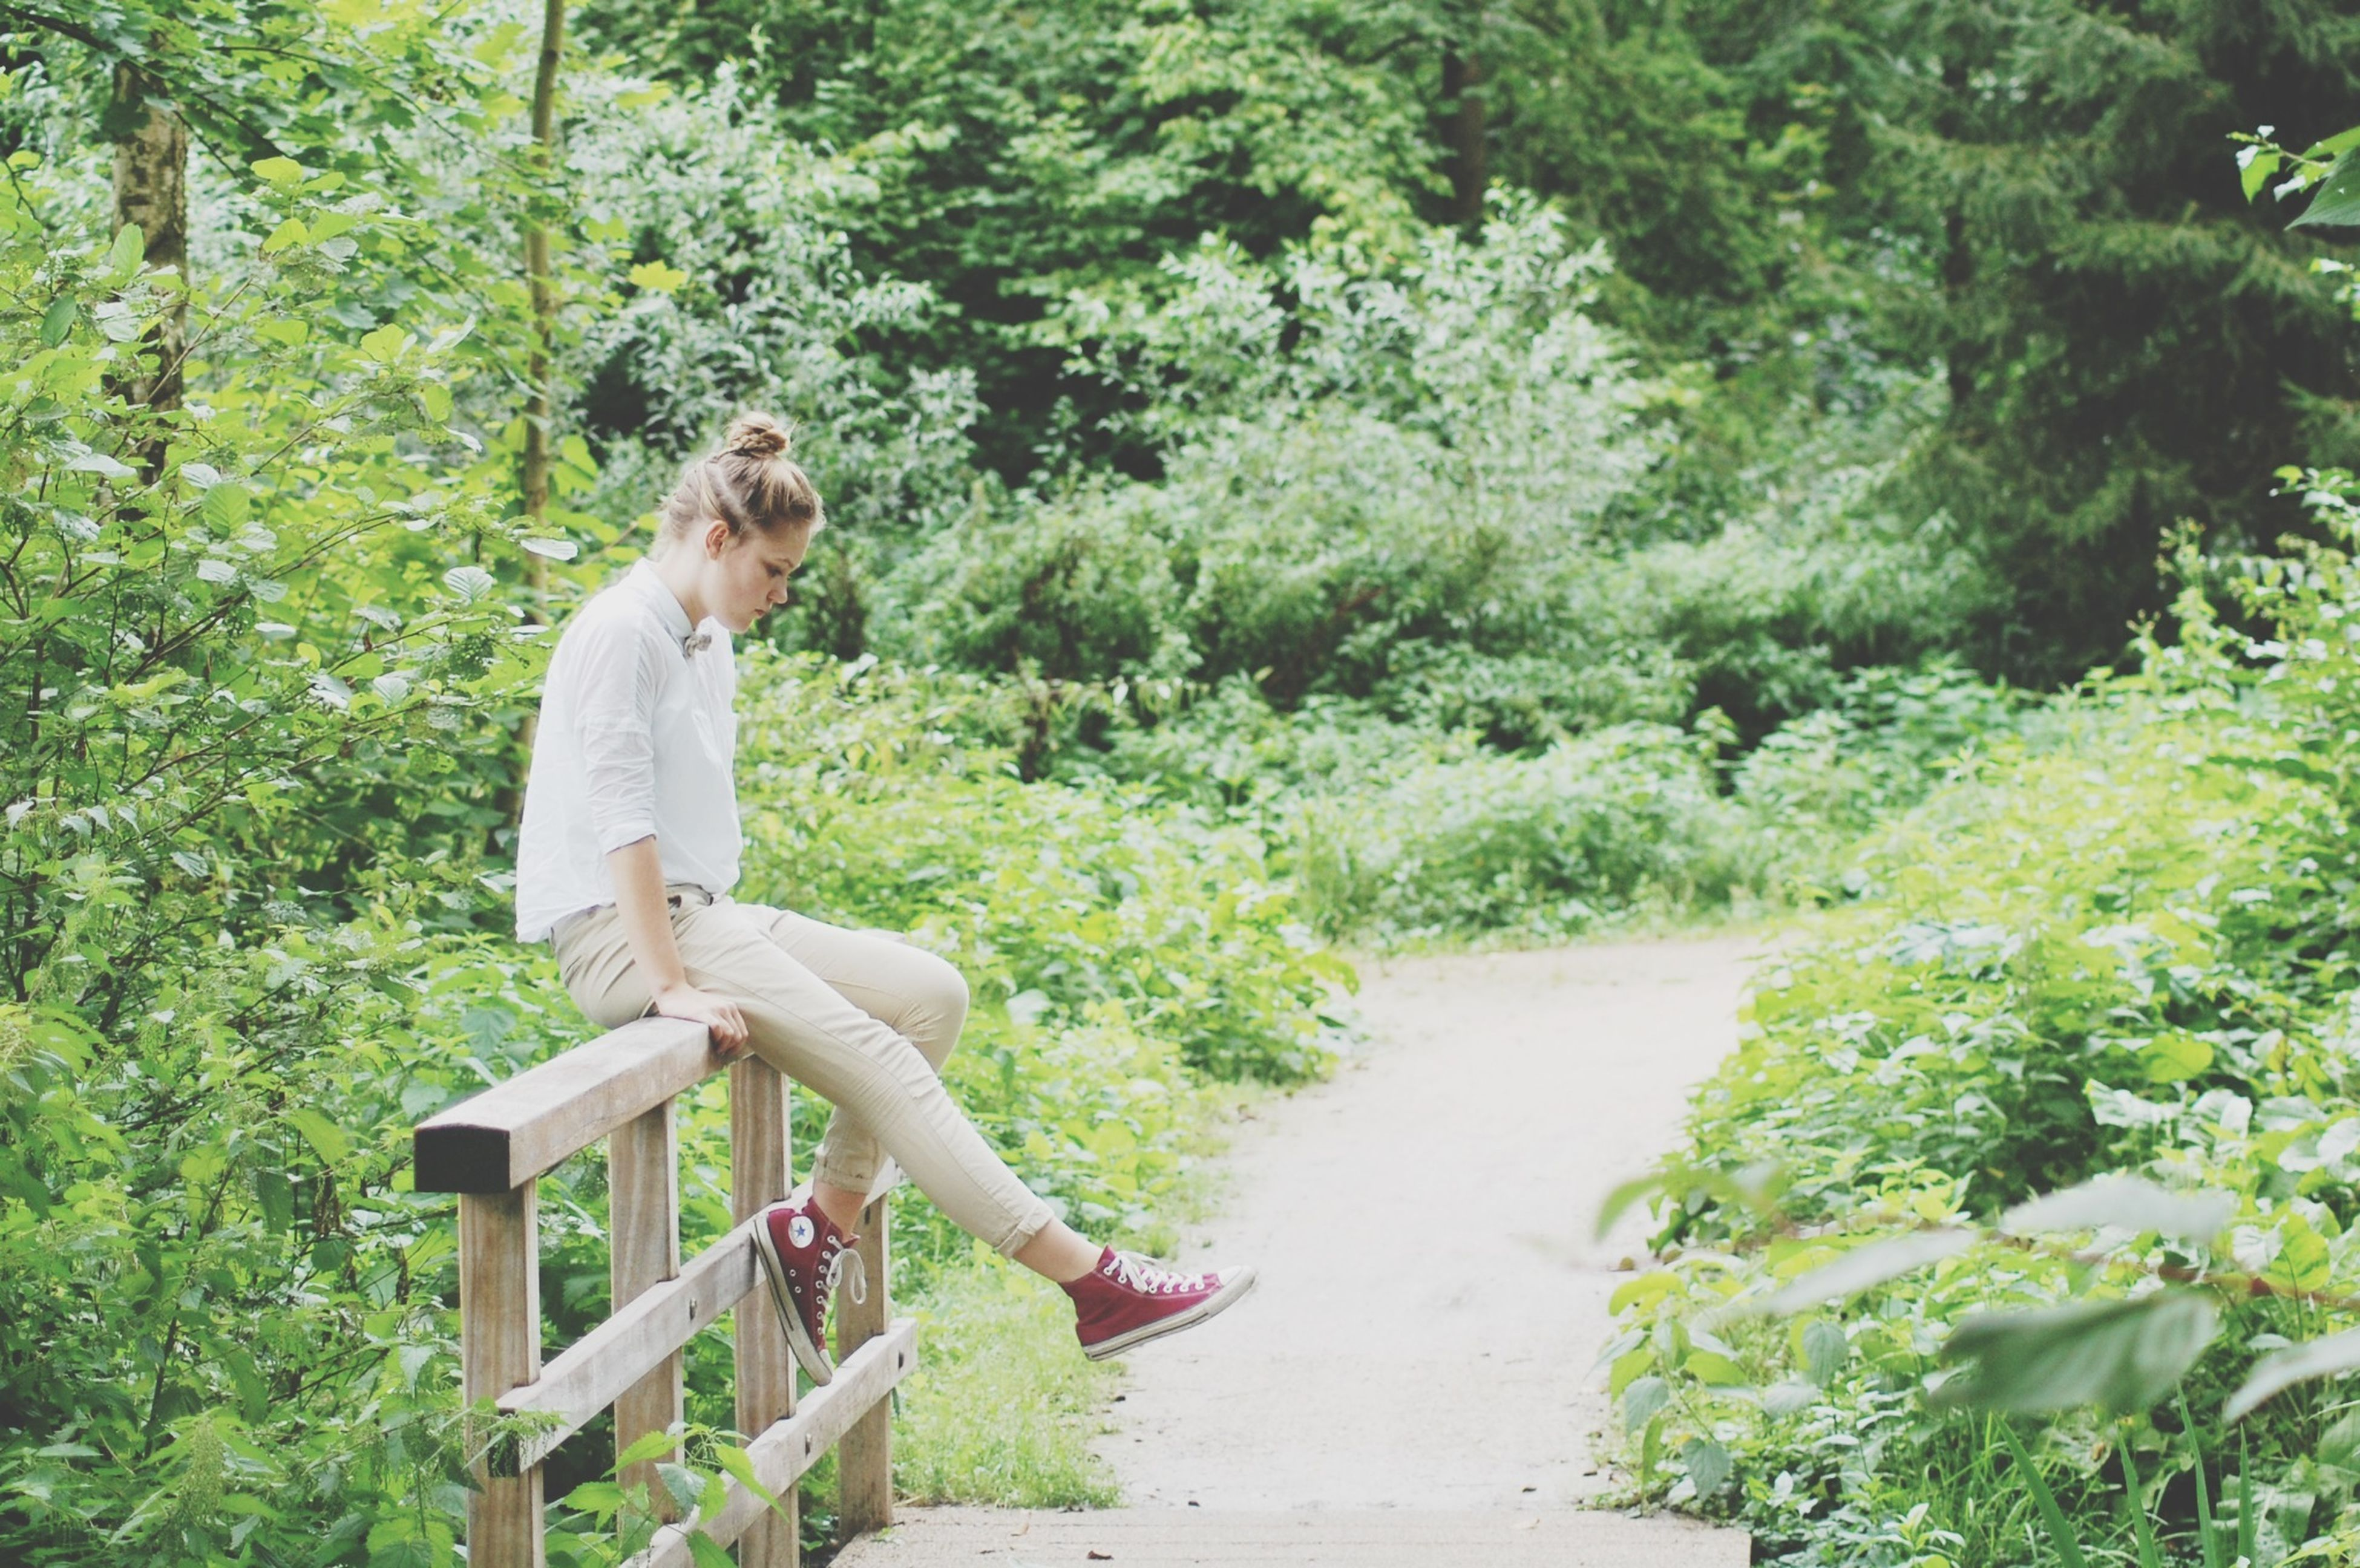 full length, tree, lifestyles, leisure activity, green color, casual clothing, person, young adult, growth, plant, jumping, side view, sitting, nature, park - man made space, animal themes, day, outdoors